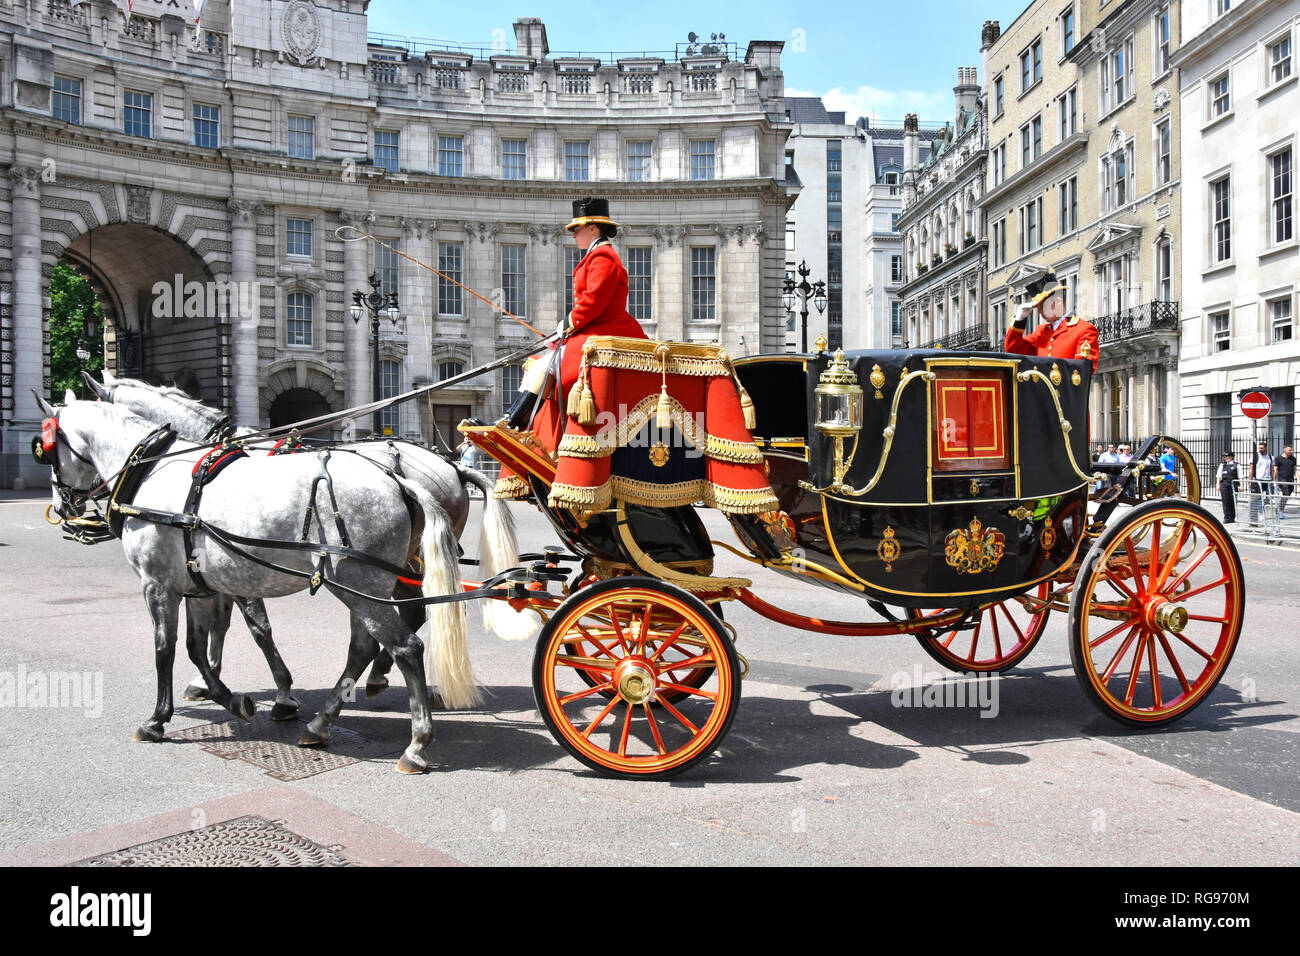 Horse drawn State Landau carriage move towards  Admiralty Arch with coachman & footman in uniform after transporting diplomatic dignitaries London UK Stock Photo